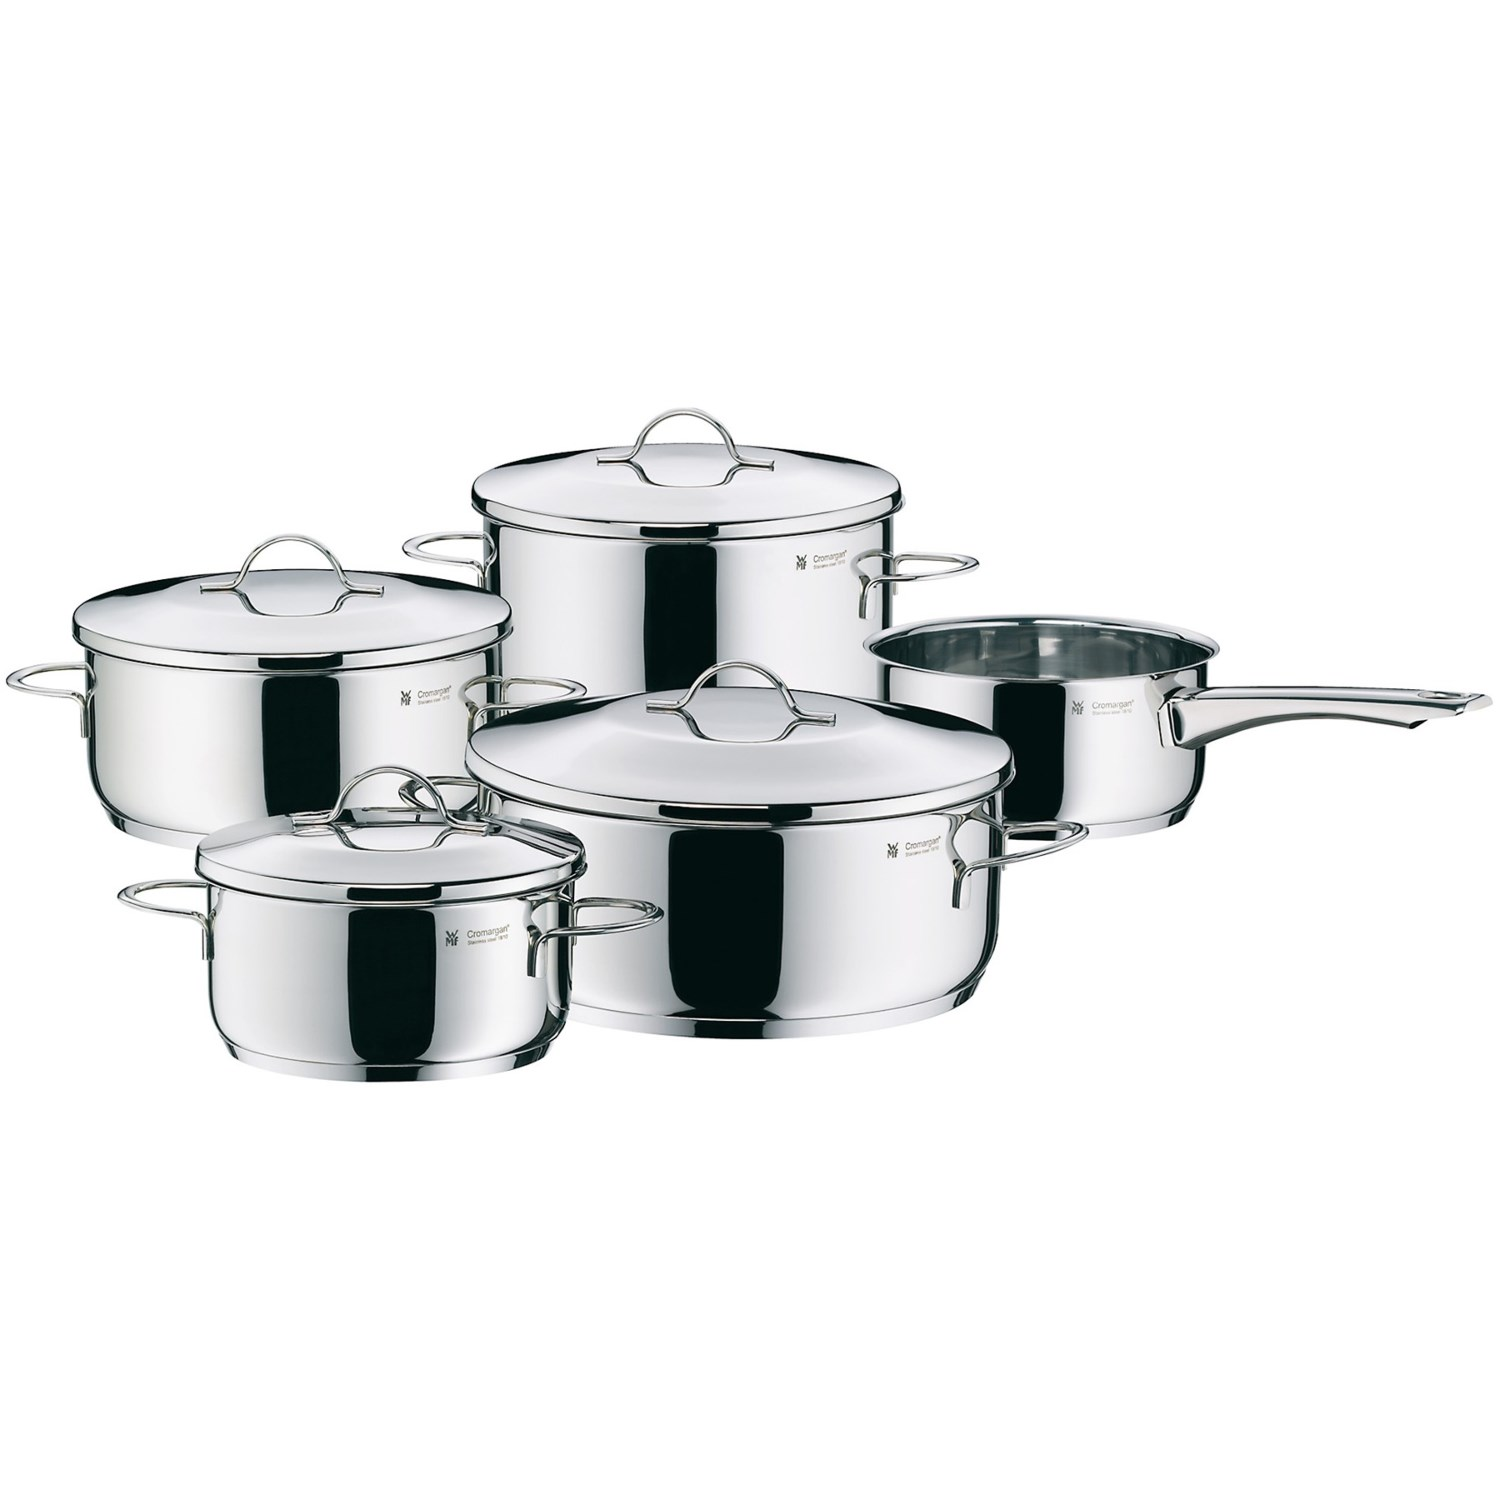 wmf casa cookware set cromargan 18 10 stainless steel 9 piece save 57. Black Bedroom Furniture Sets. Home Design Ideas